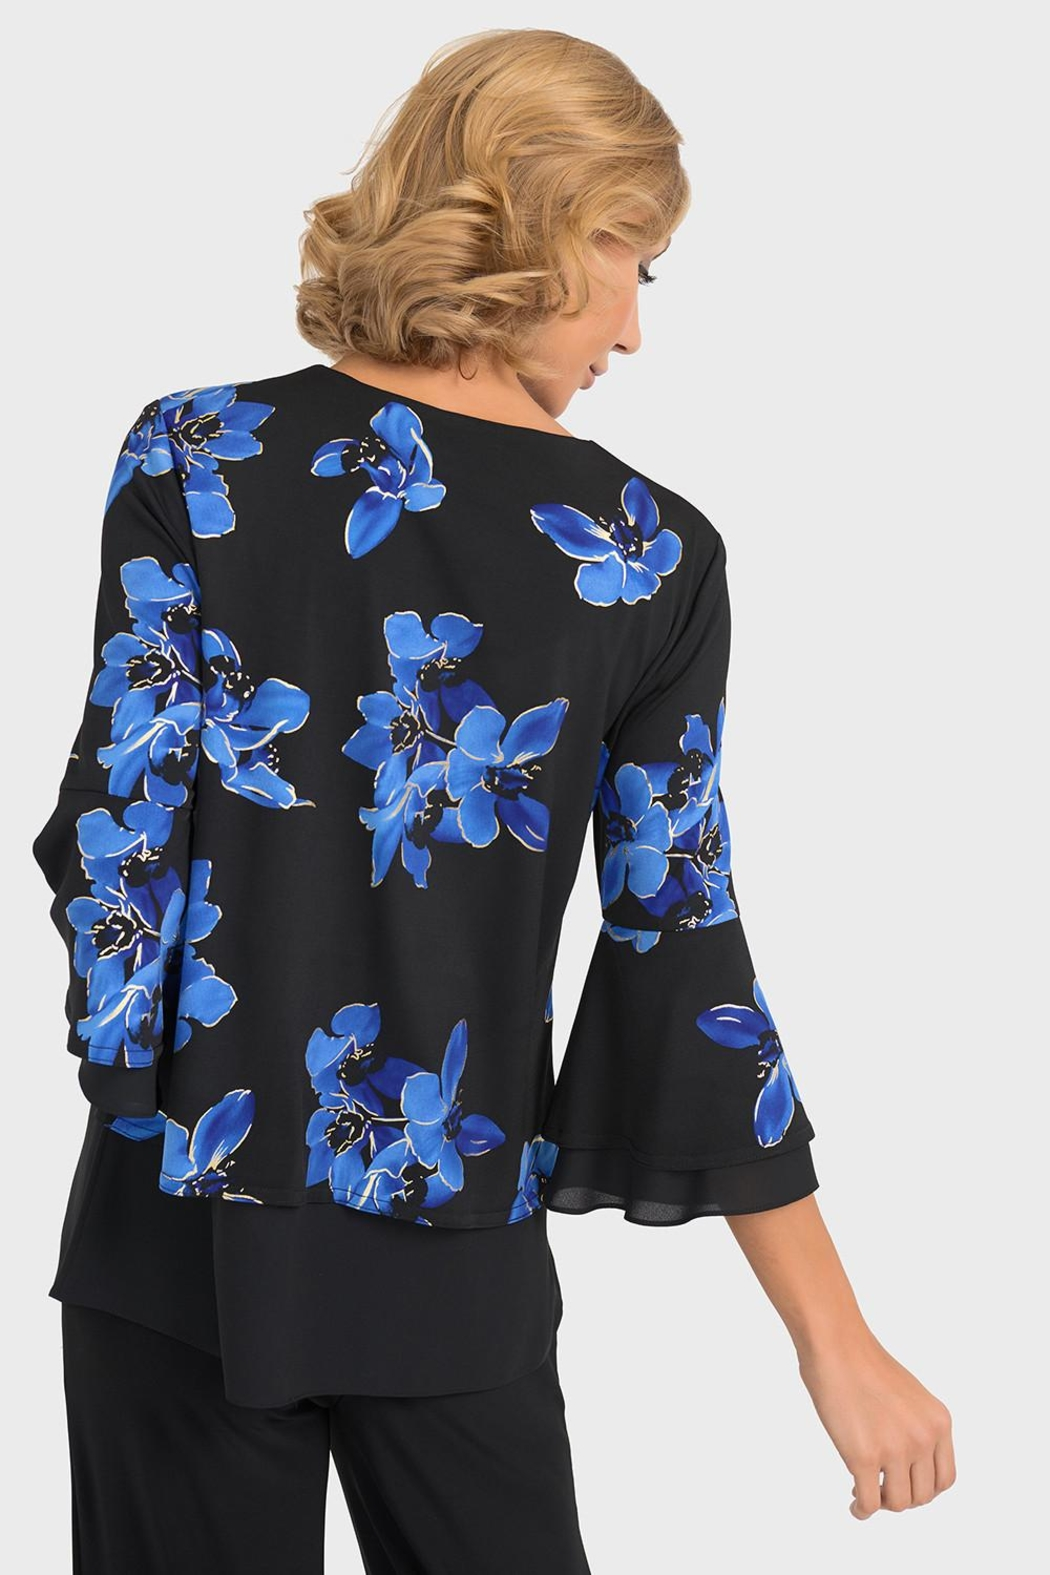 Joseph Ribkoff Veronica Floral Top - Side Cropped Image